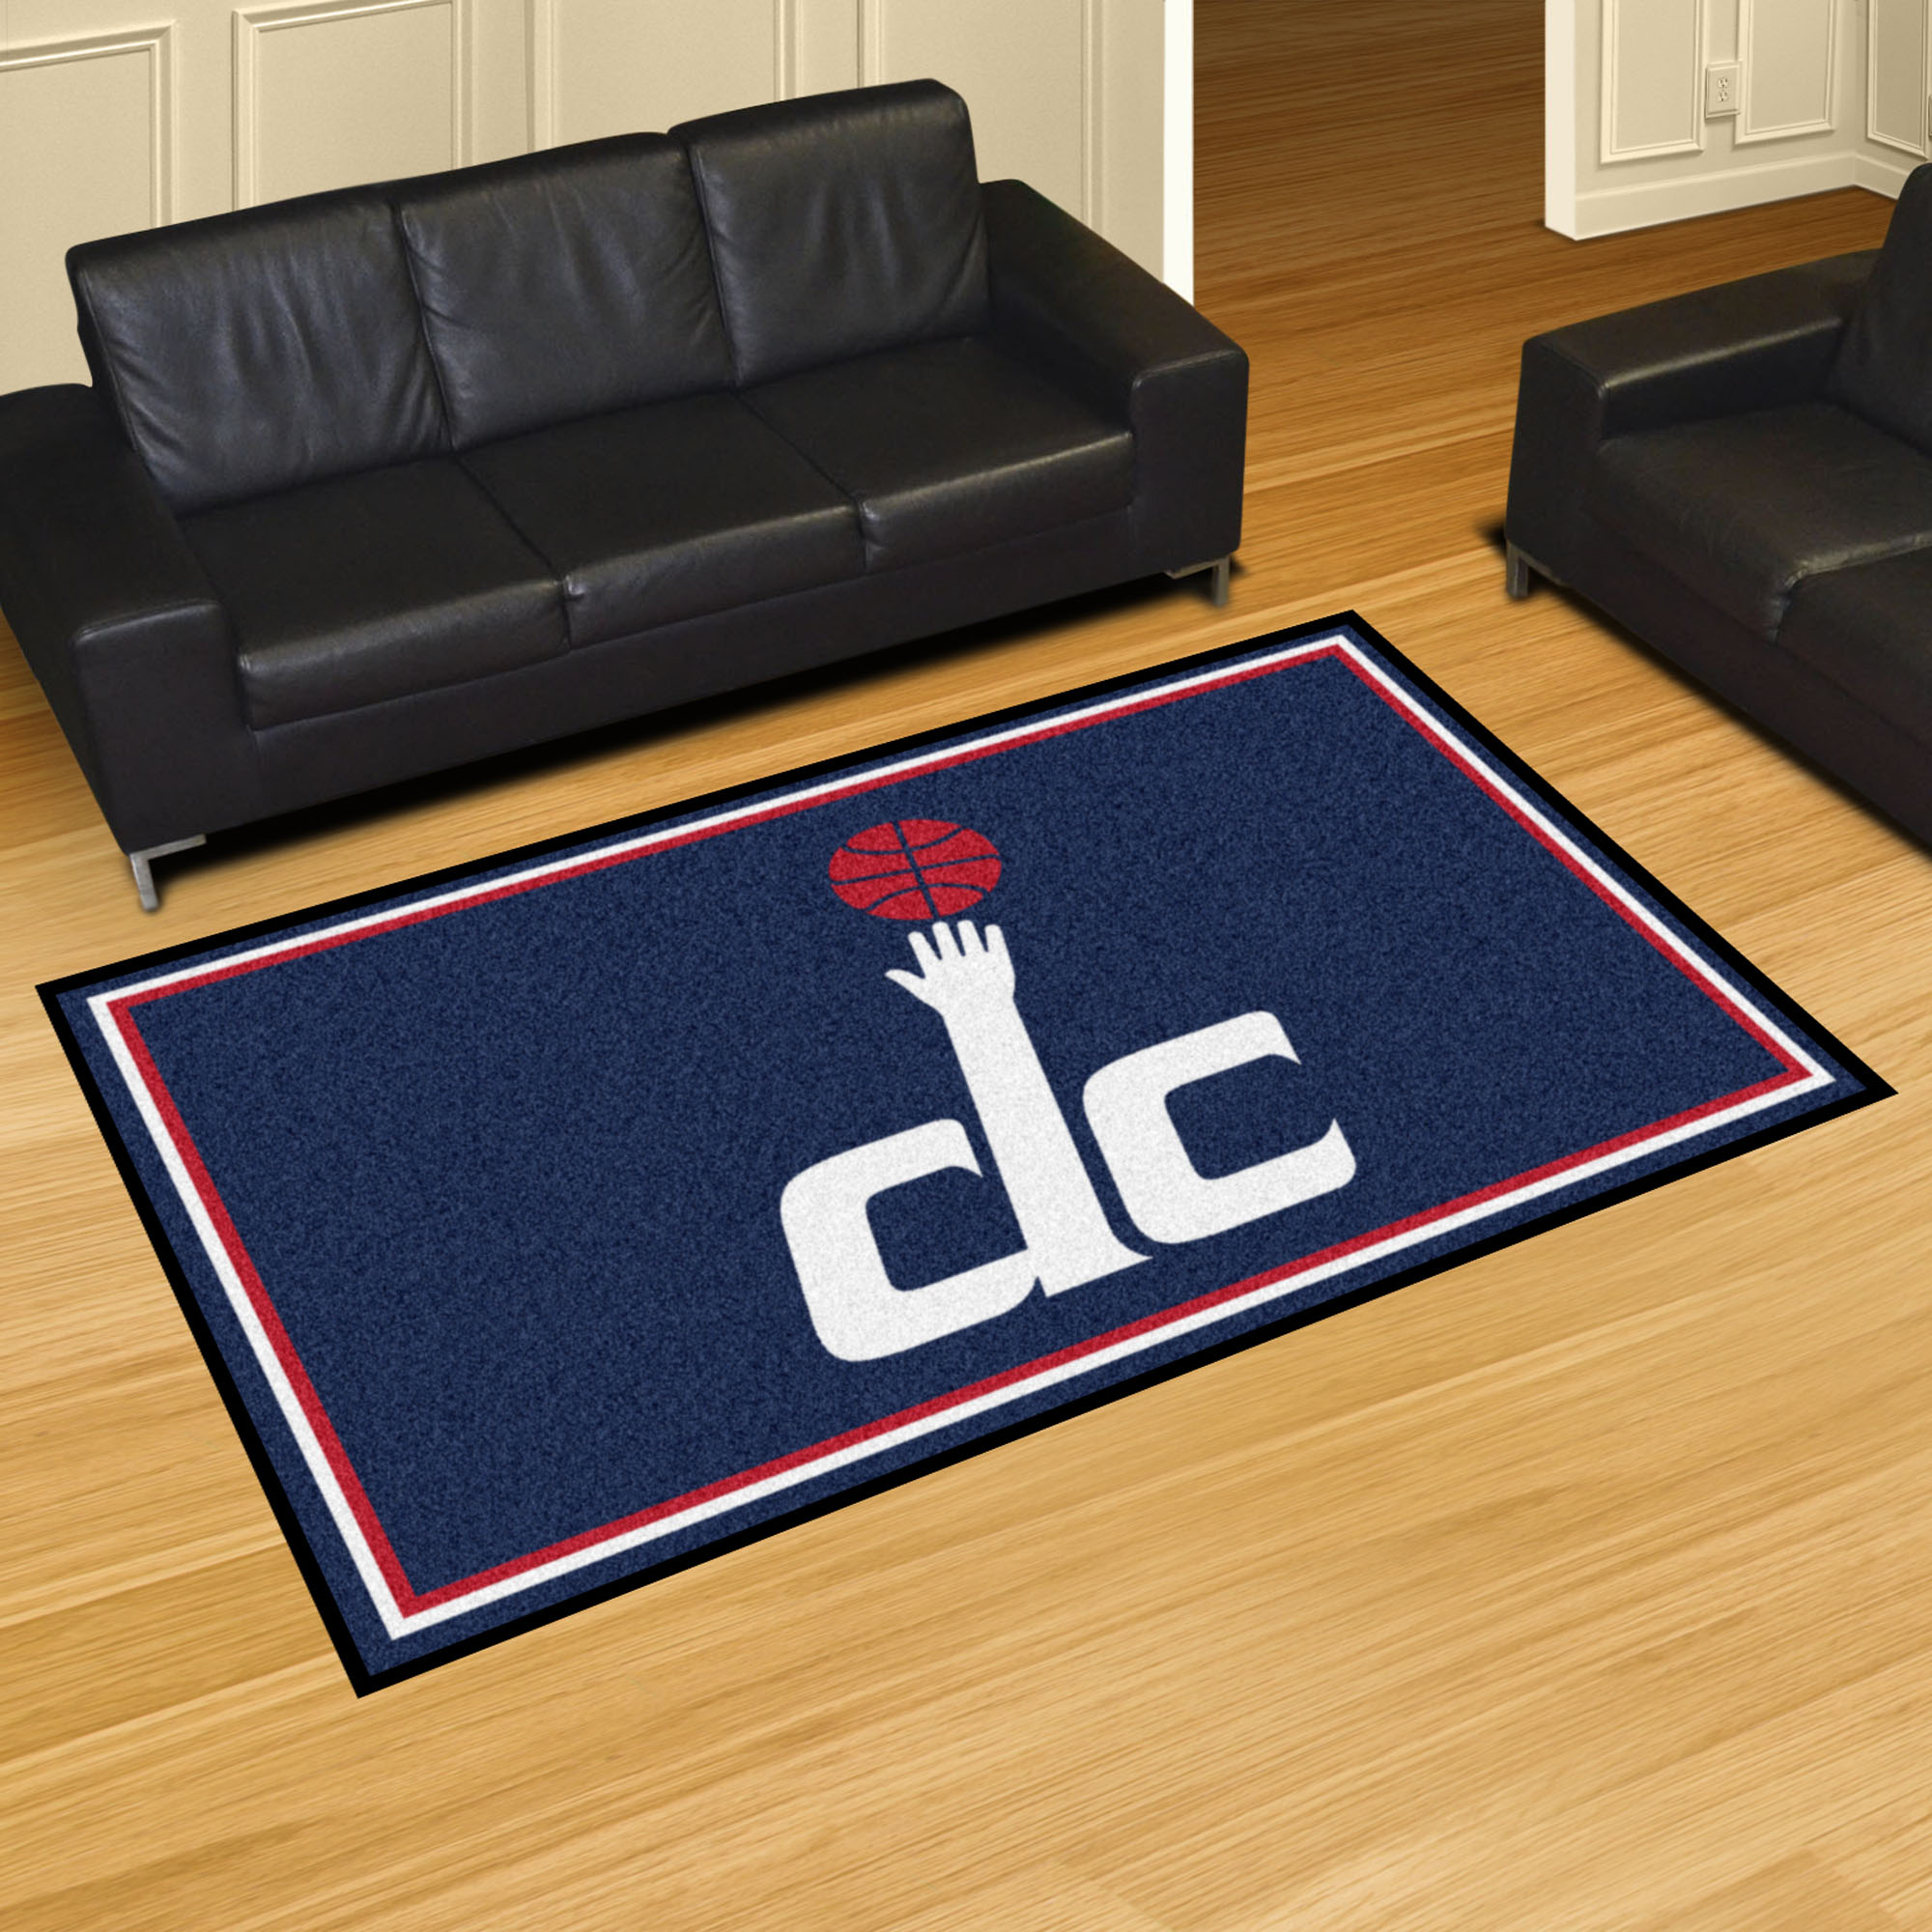 Washington Wizards 5x8 Area Rug